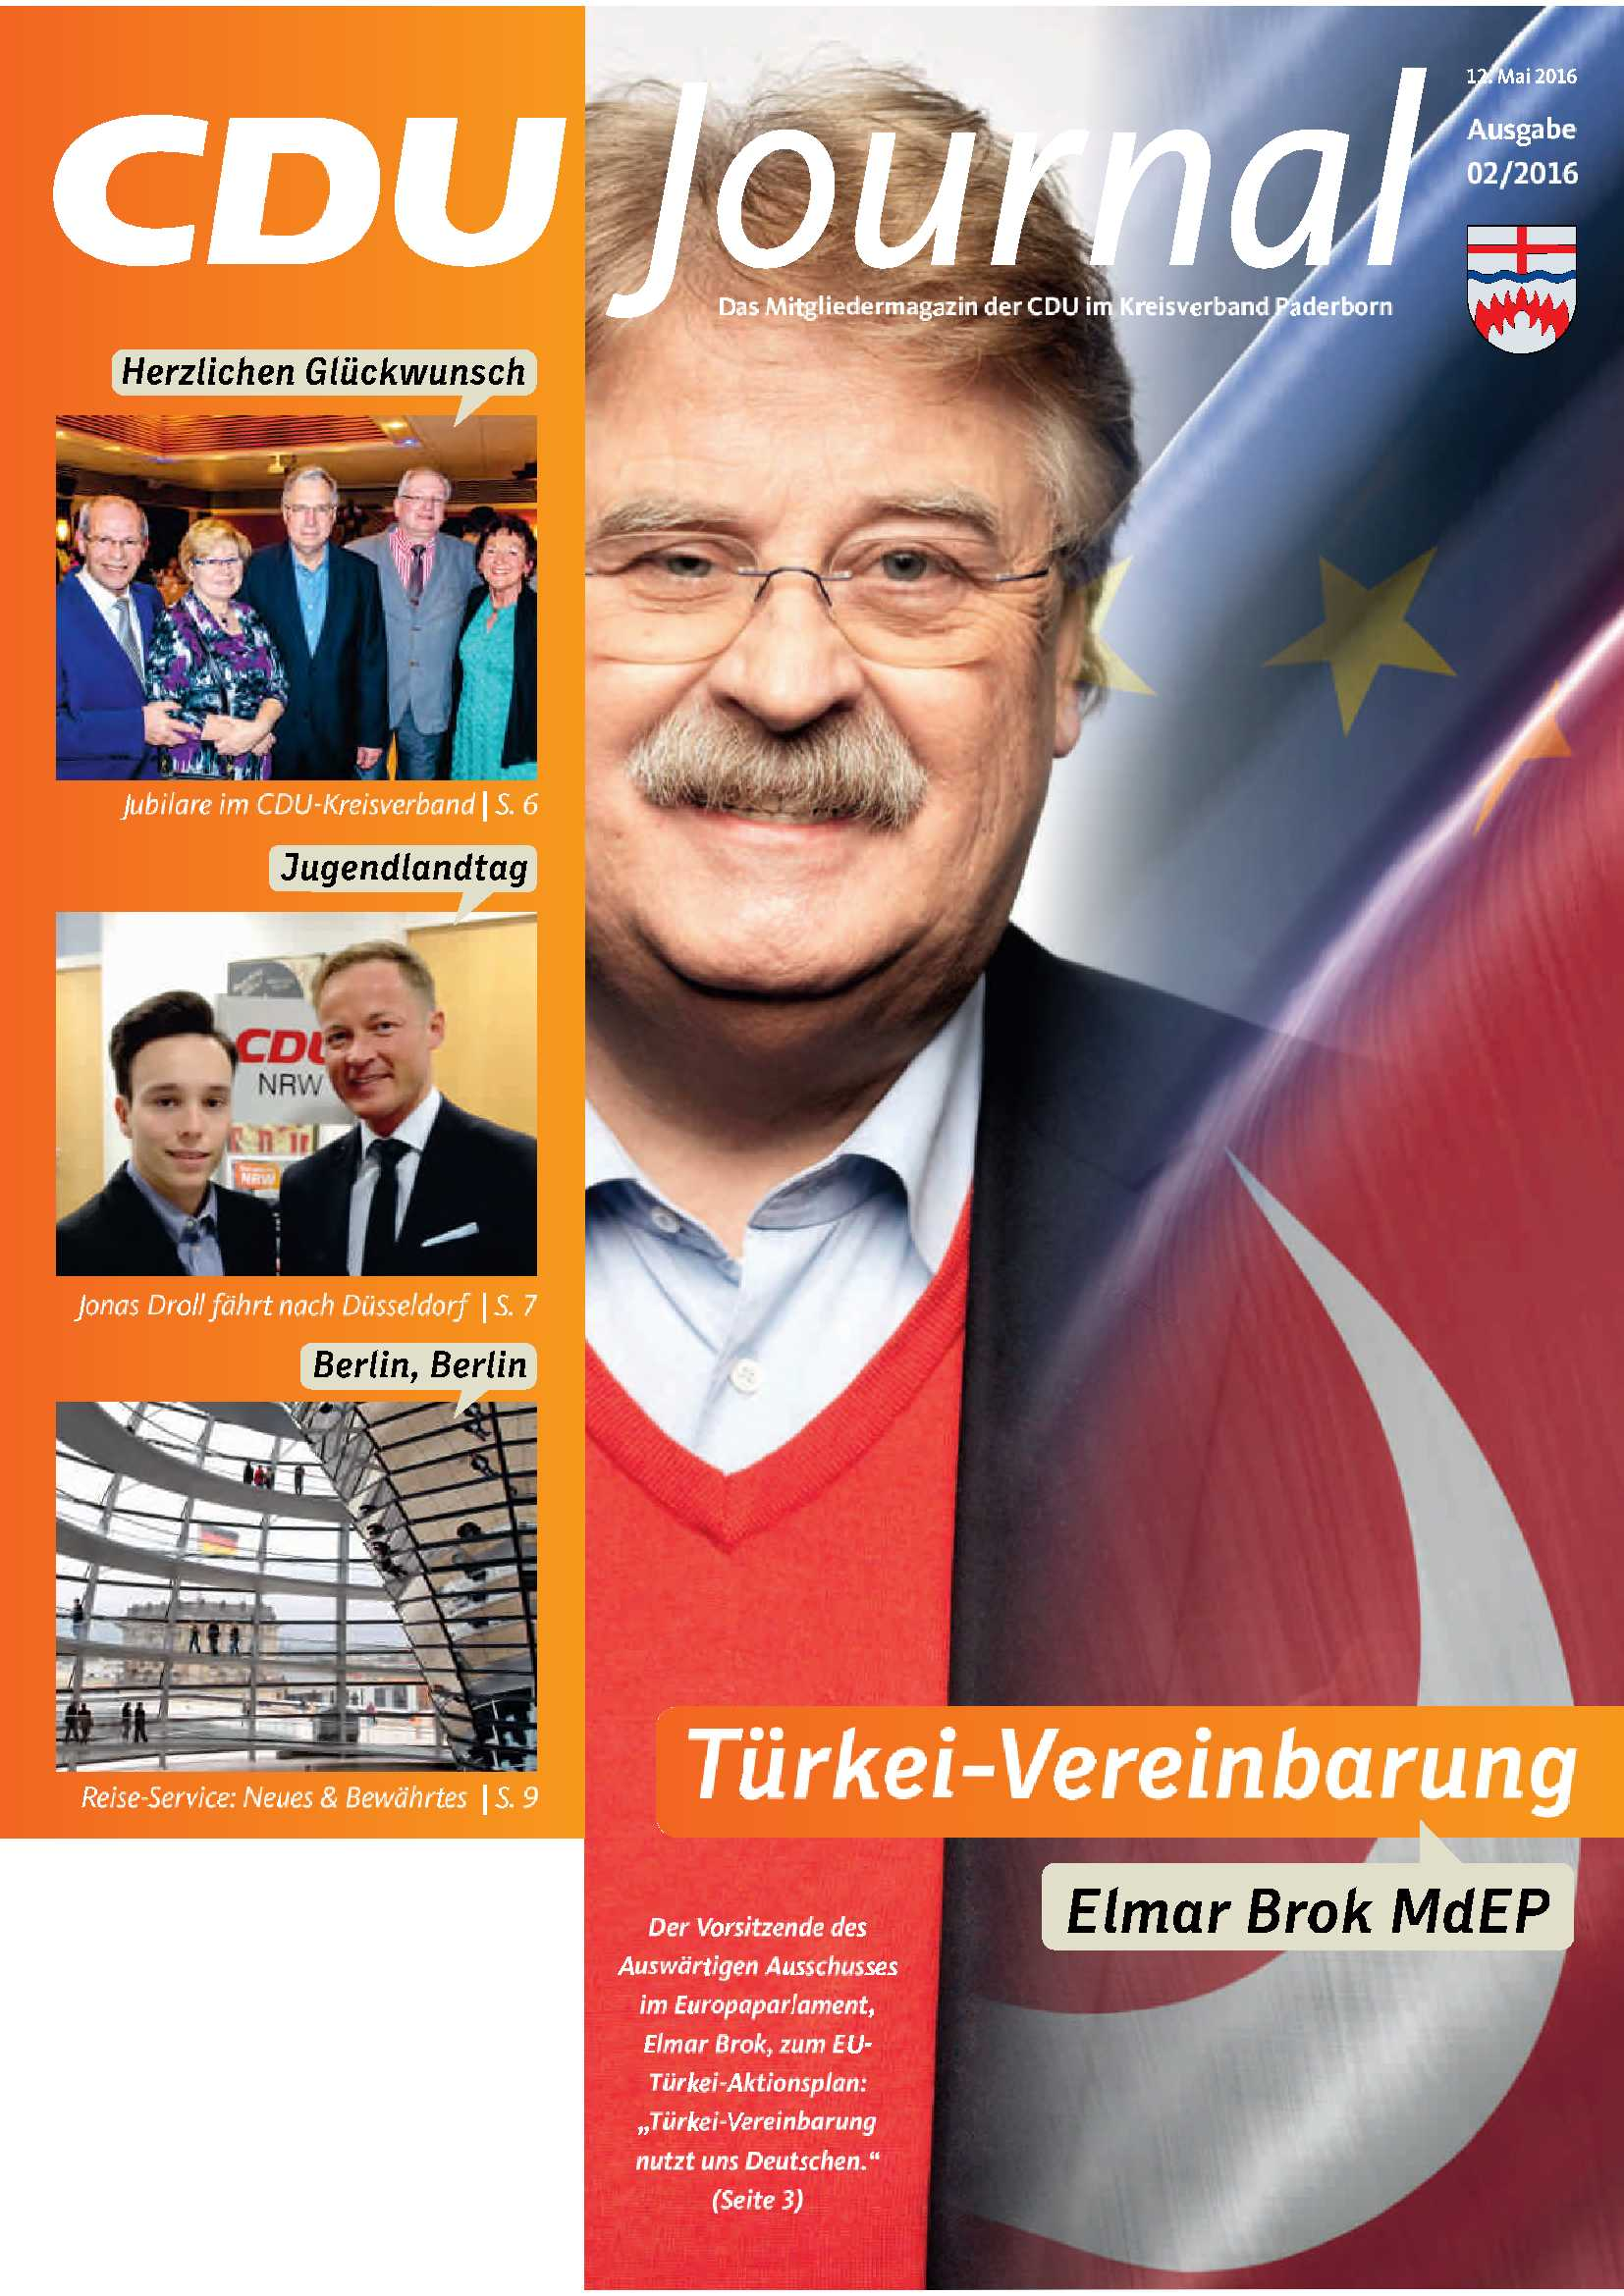 CDU Journal 02 2016 Cover